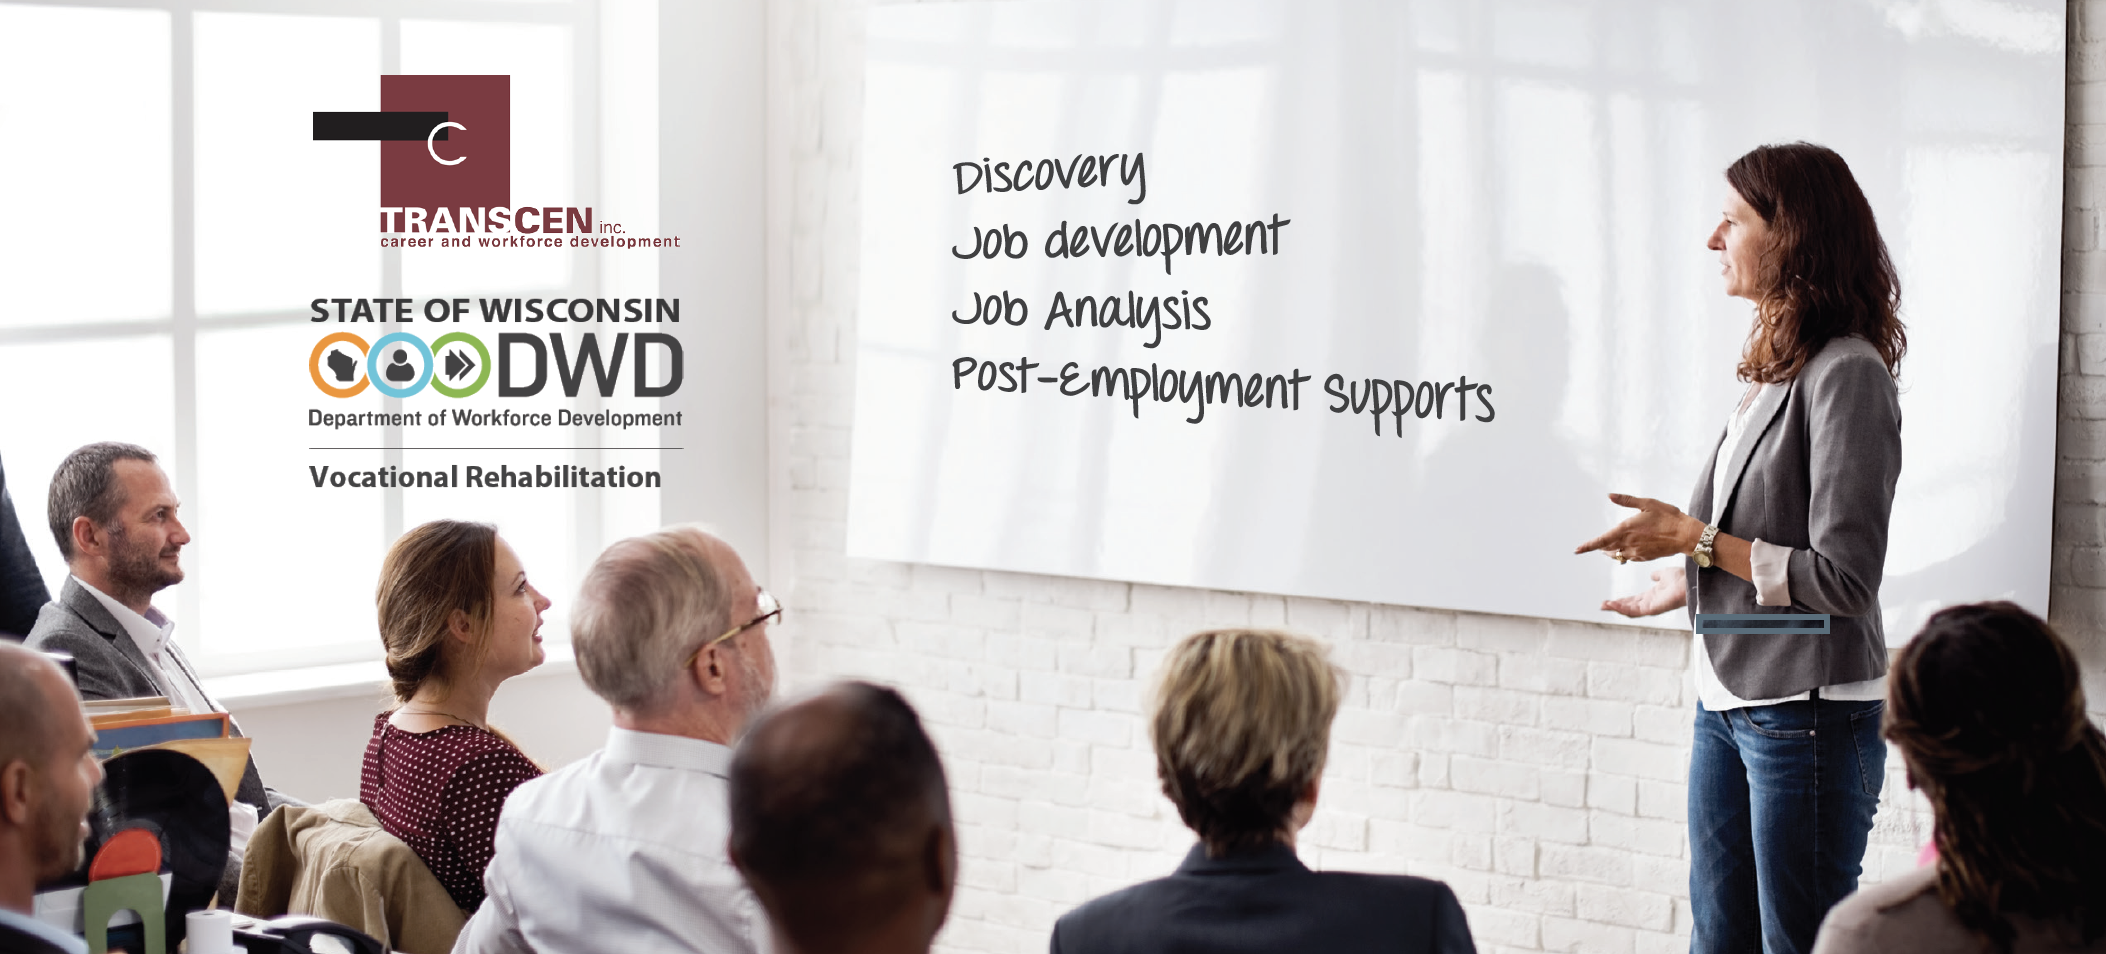 Person teaching a workshop with the words: Discovery, job development, job analysis and post-employment supports on the white board.